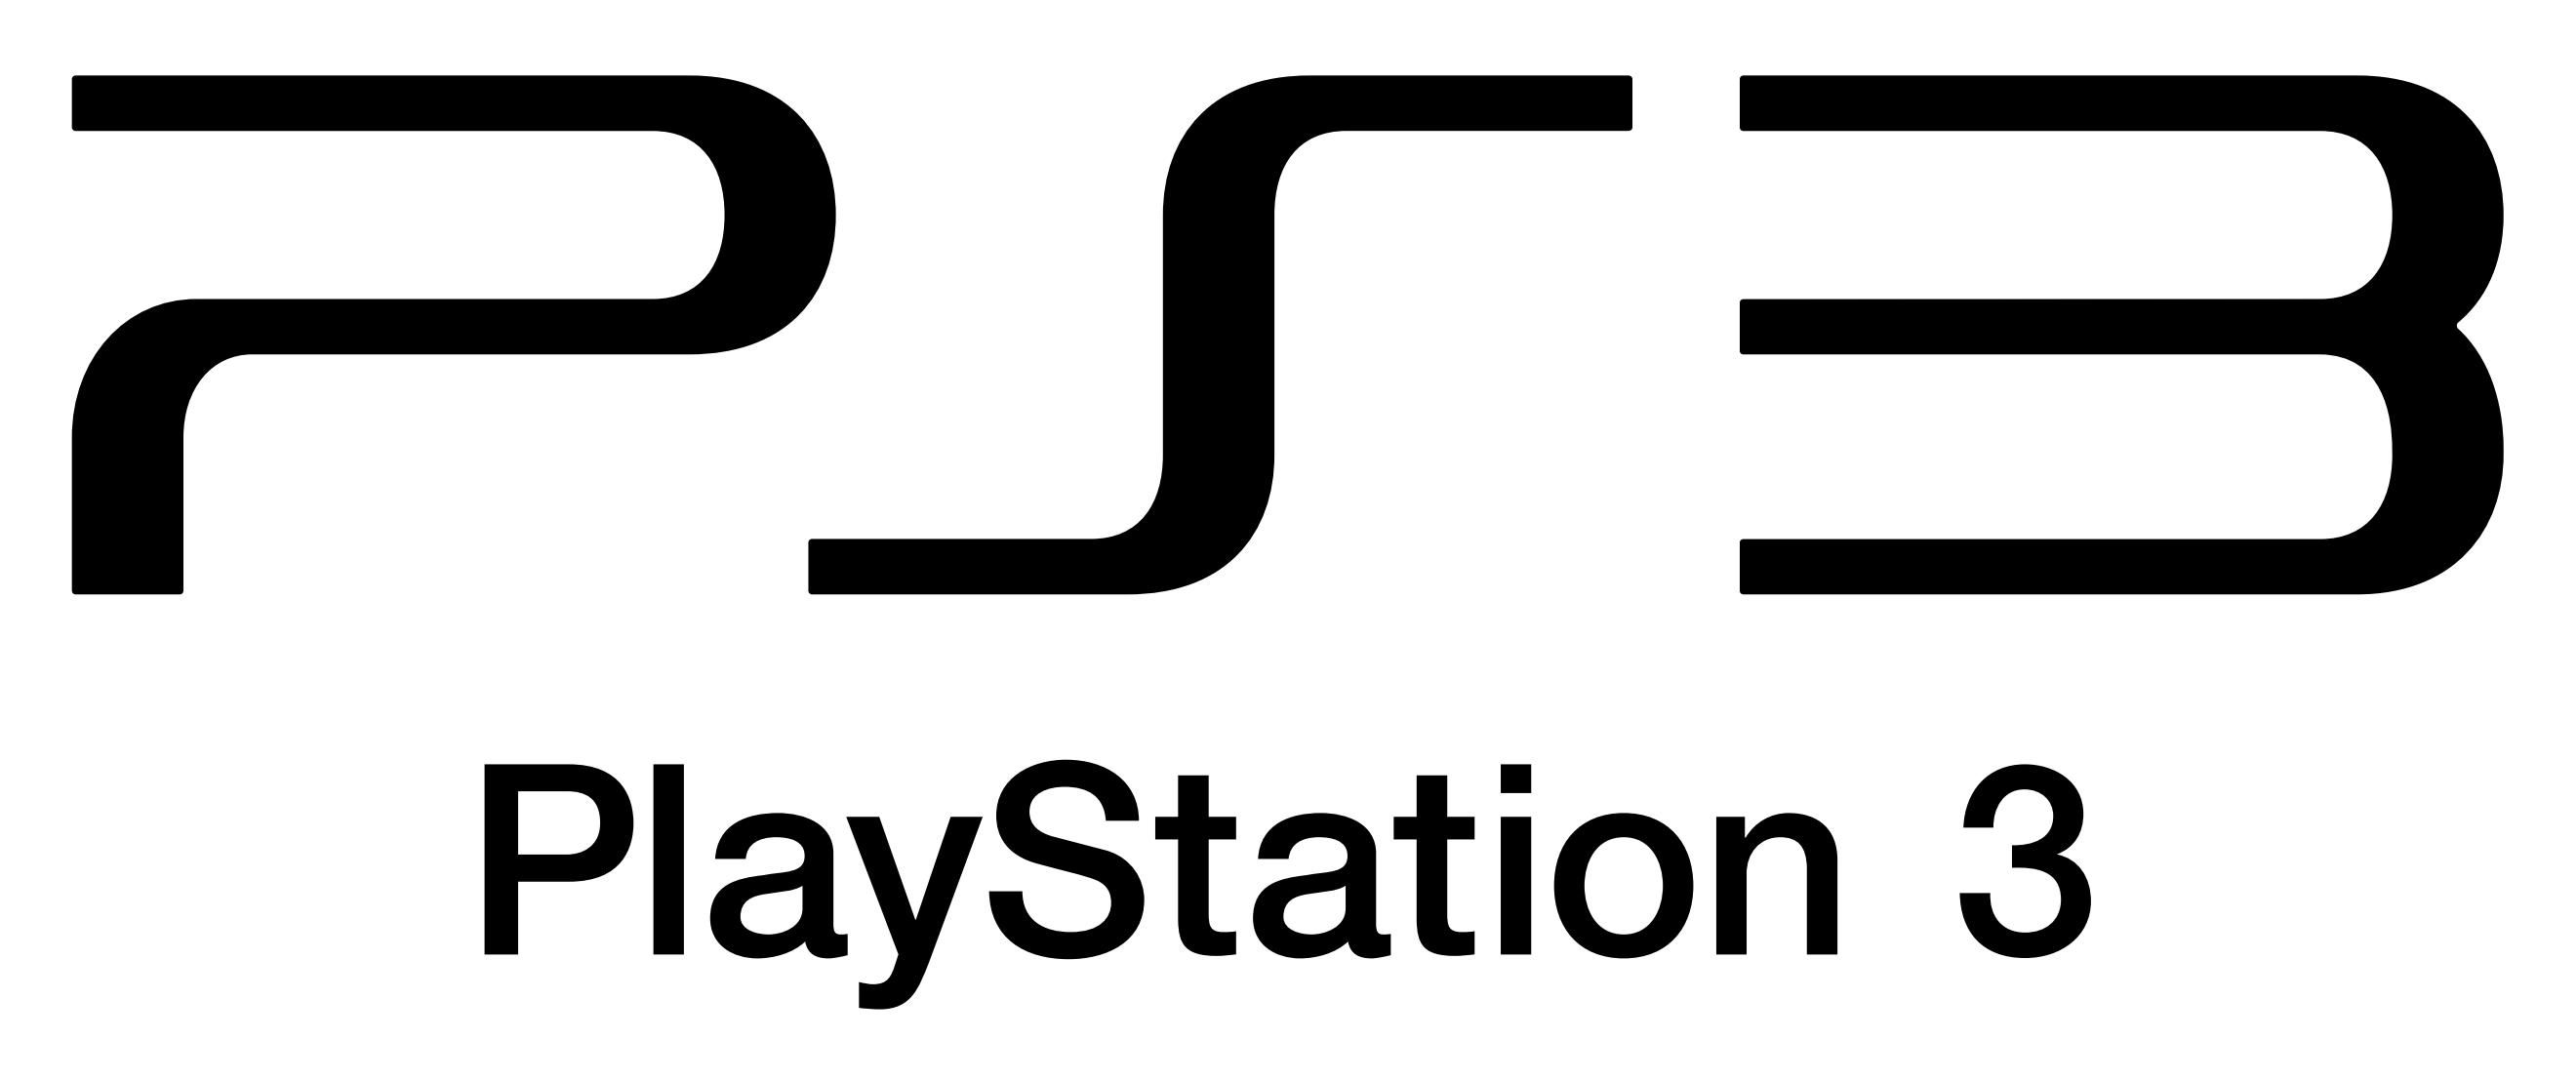 Ps3 Playstation 3 Logo Vector Eps File